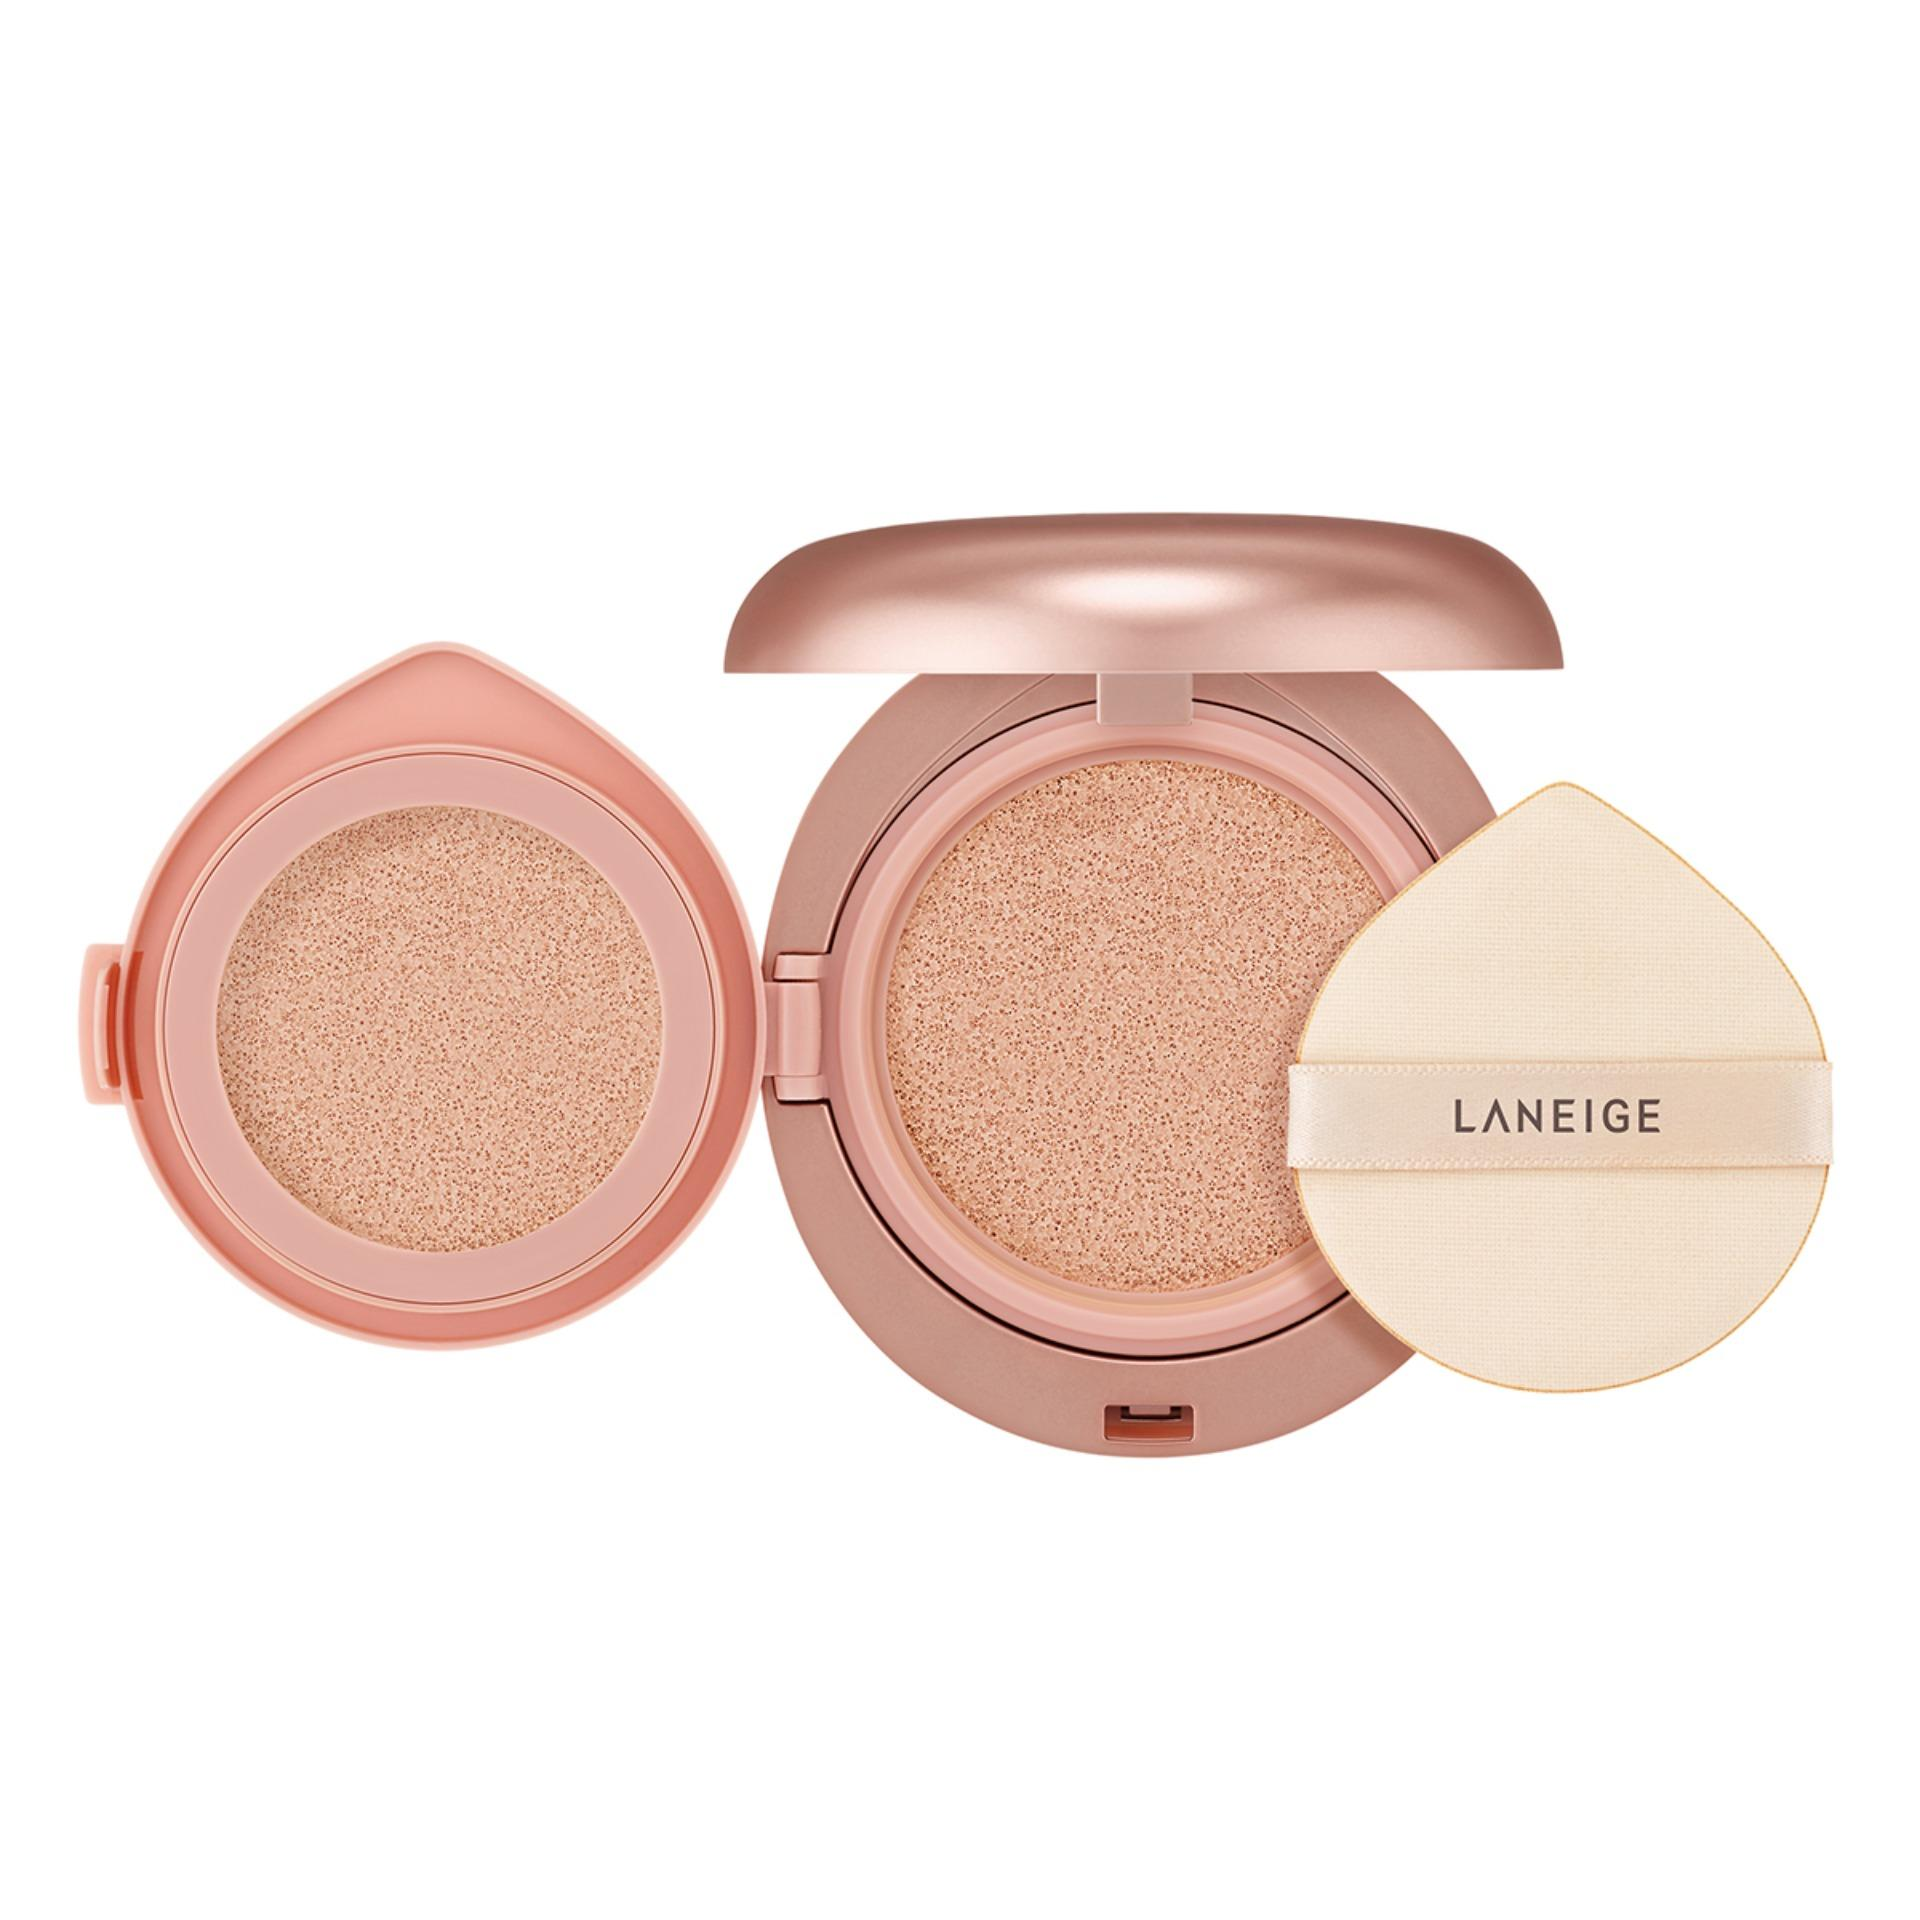 Compare Laneige Layering Cover Cushion 14G 2 5G Select From 7 Shades